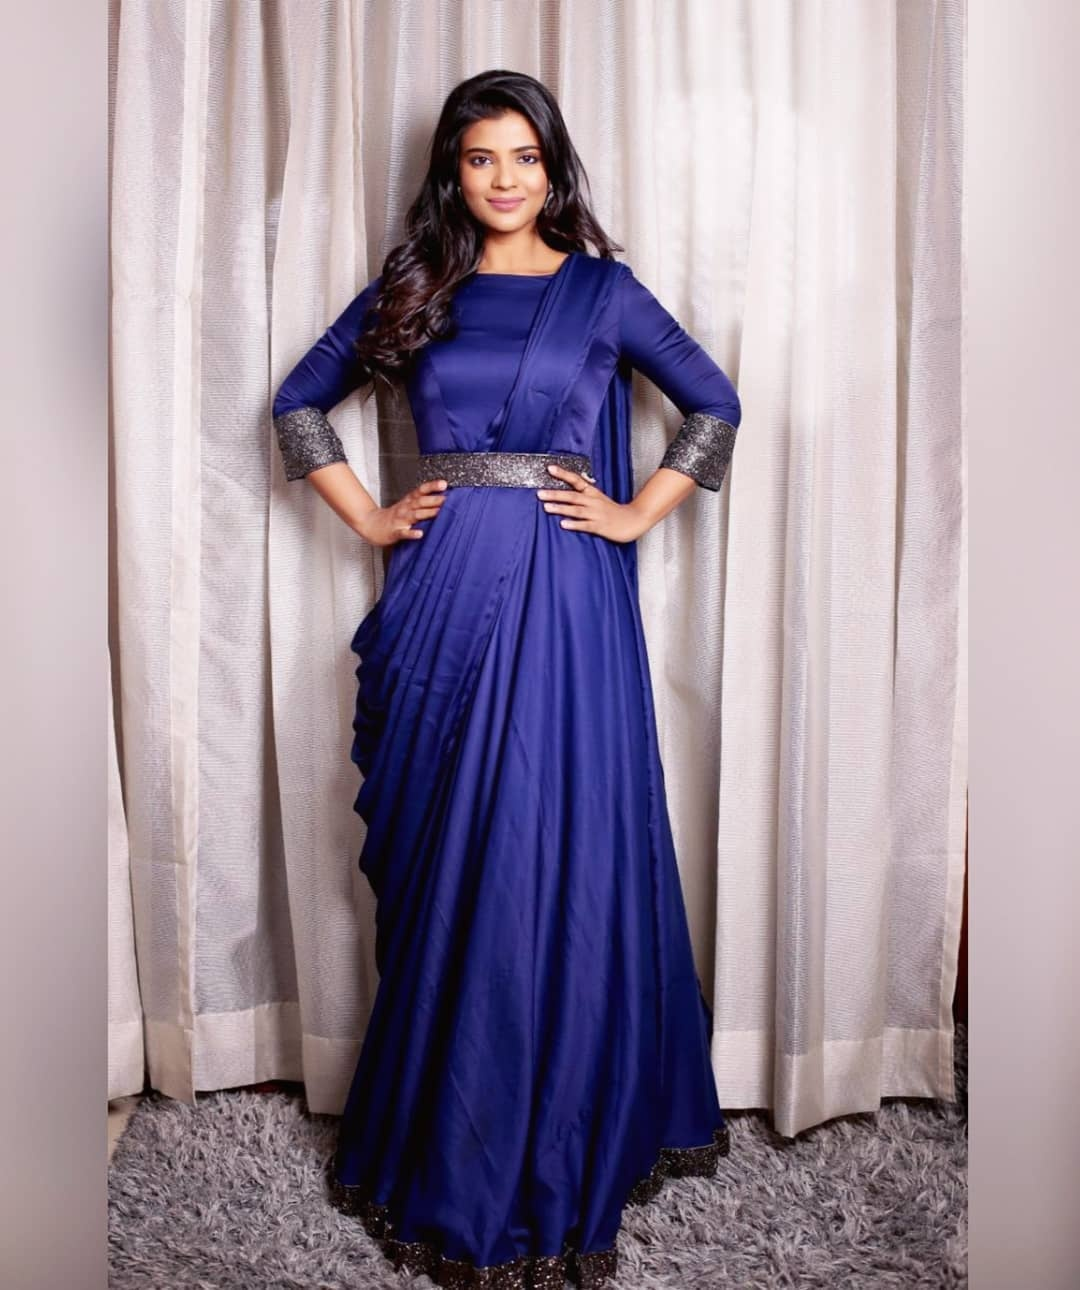 Drape gown. . .  Gorgeous Actress Aishwarya Rajesh in  midnight blue drape gown. . . Place your orders now!  . . For orders and queries please whatsapp on  9952093562 or Reach on 044 4262 4085. 2021-10-01